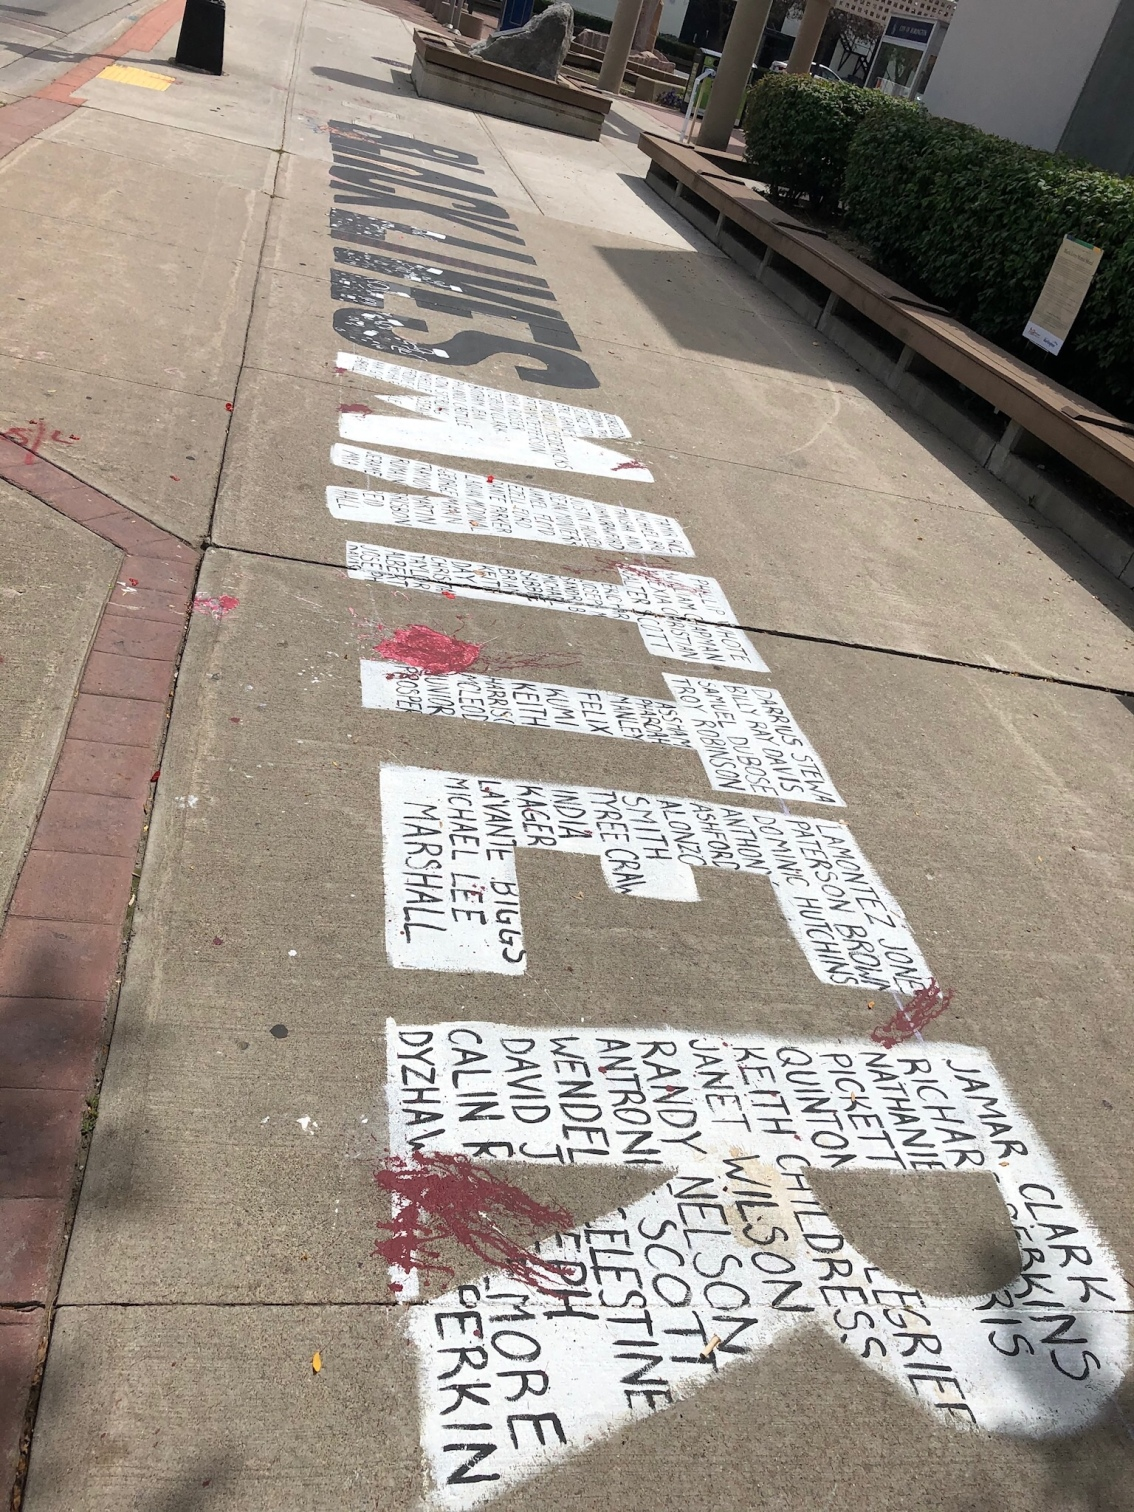 The Black Lives Matter Sidewalk Mural in Burlington ON